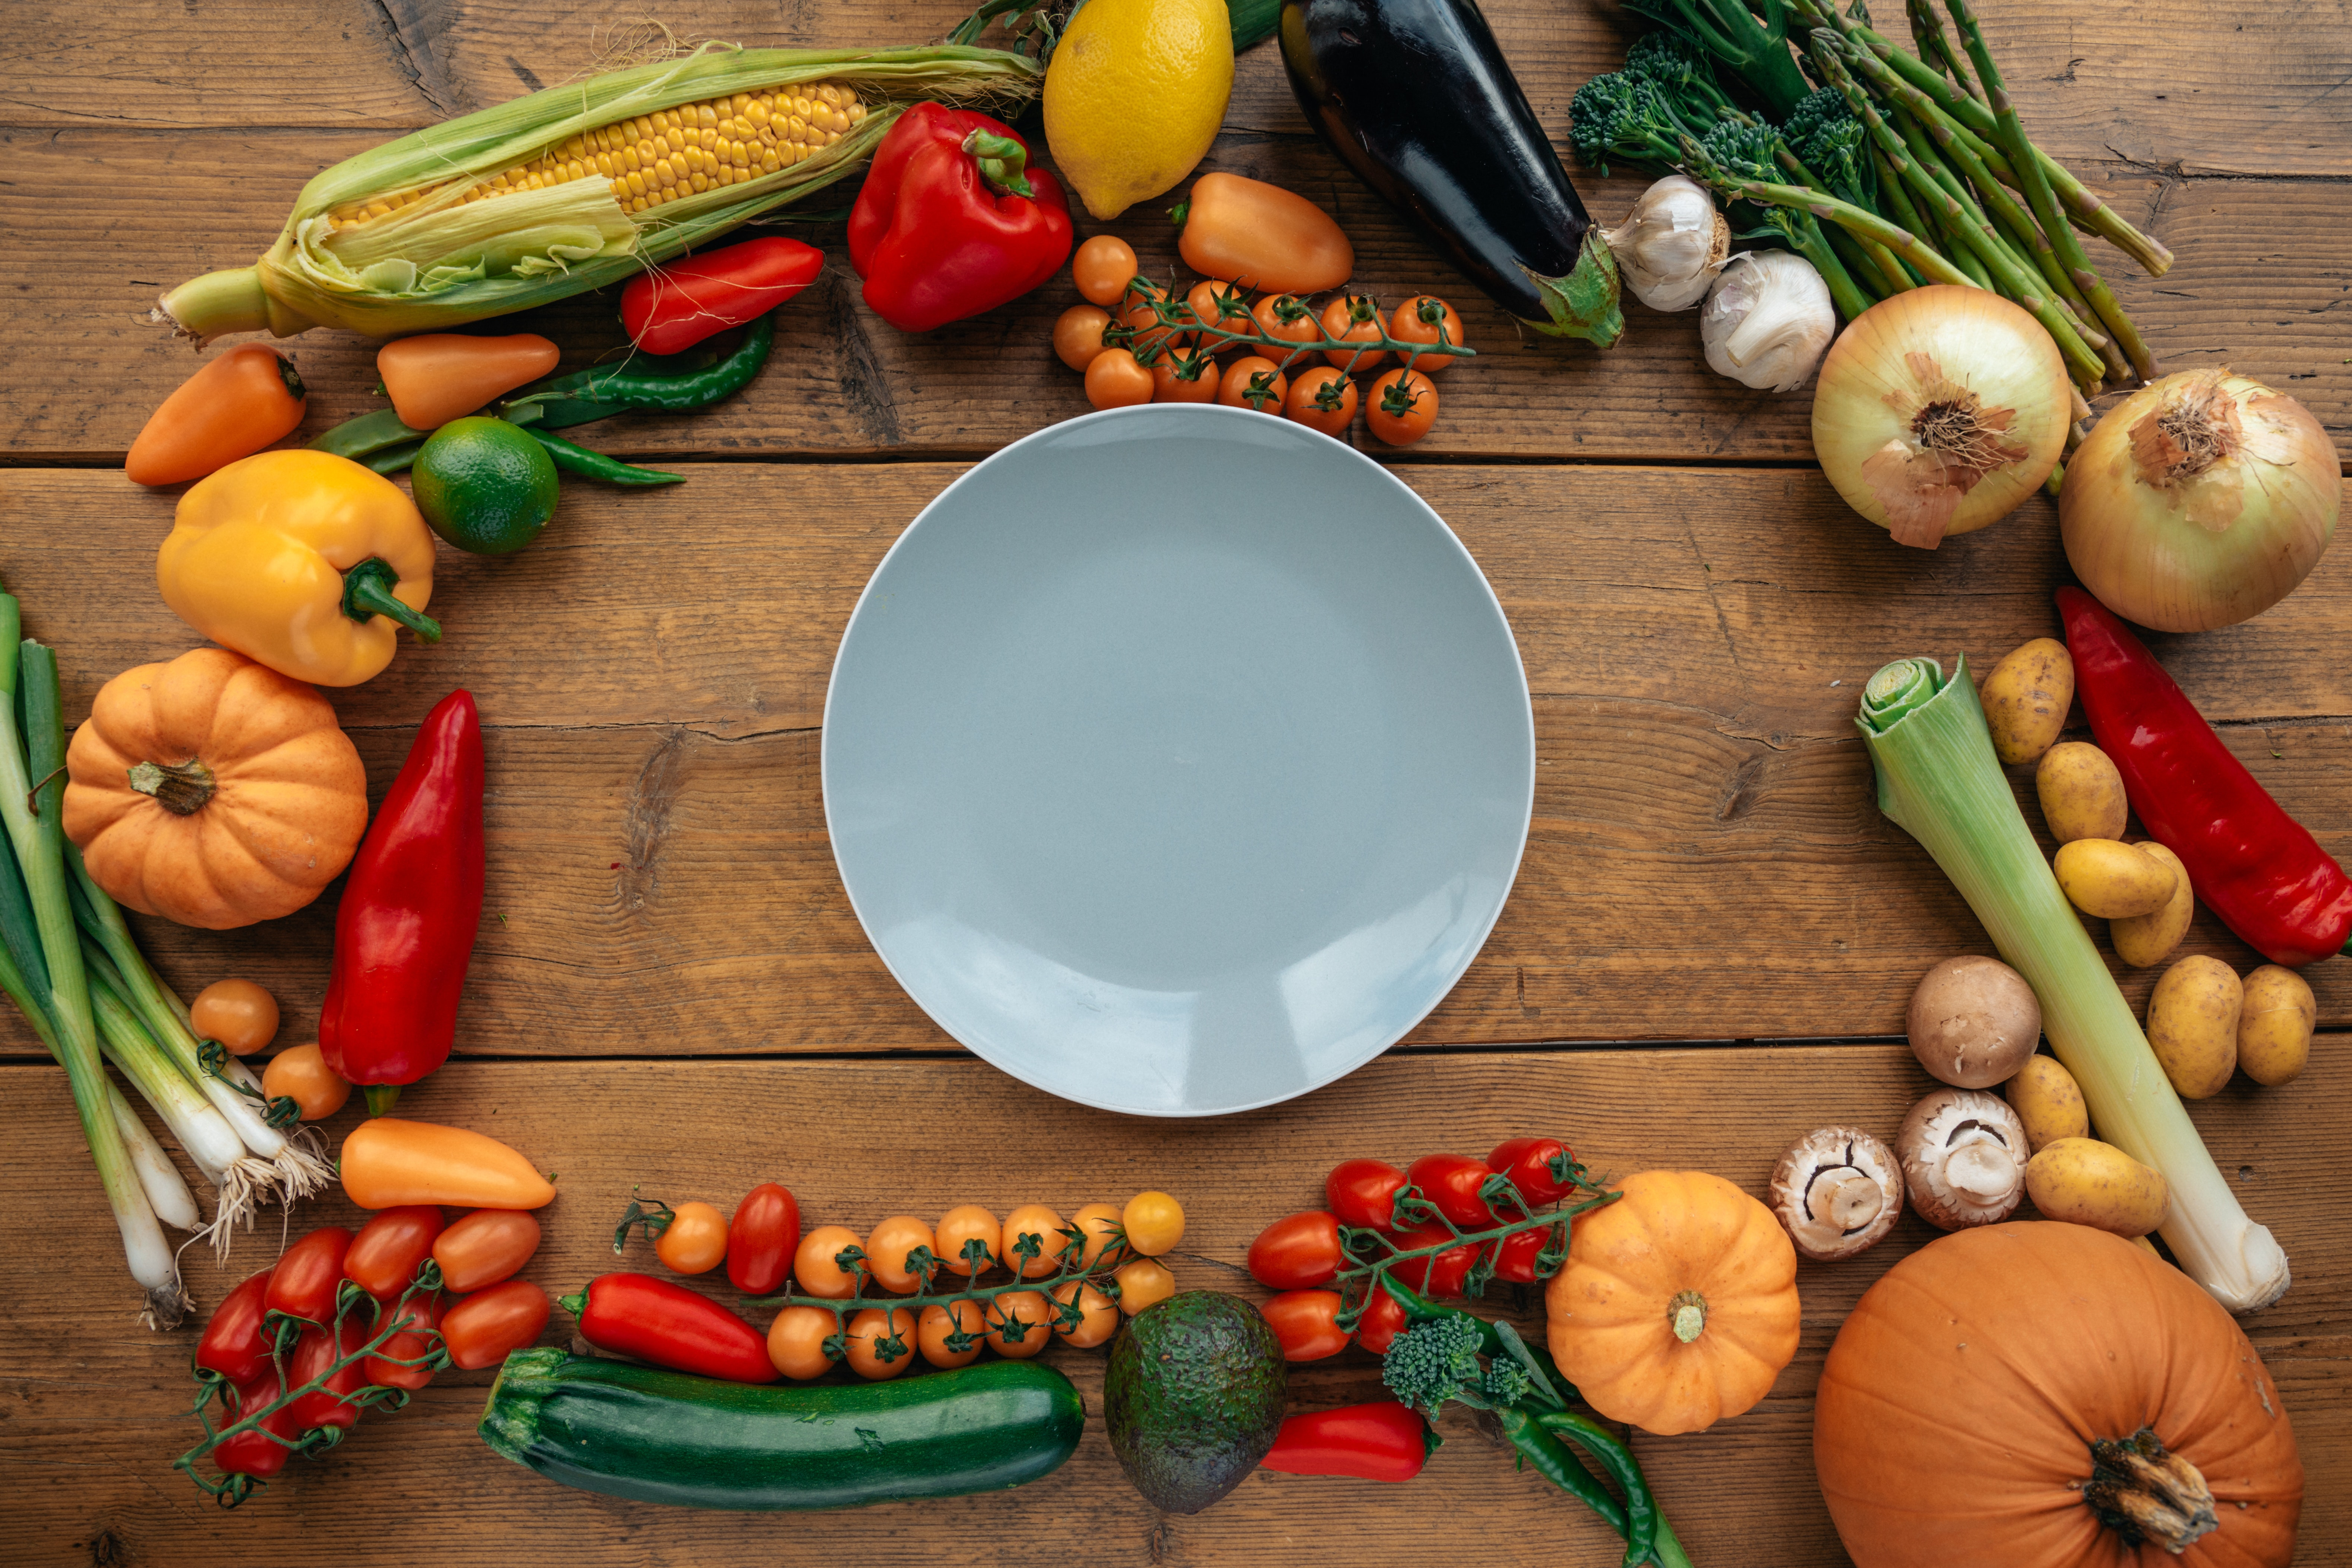 8 Tips On How To Waste Less Food